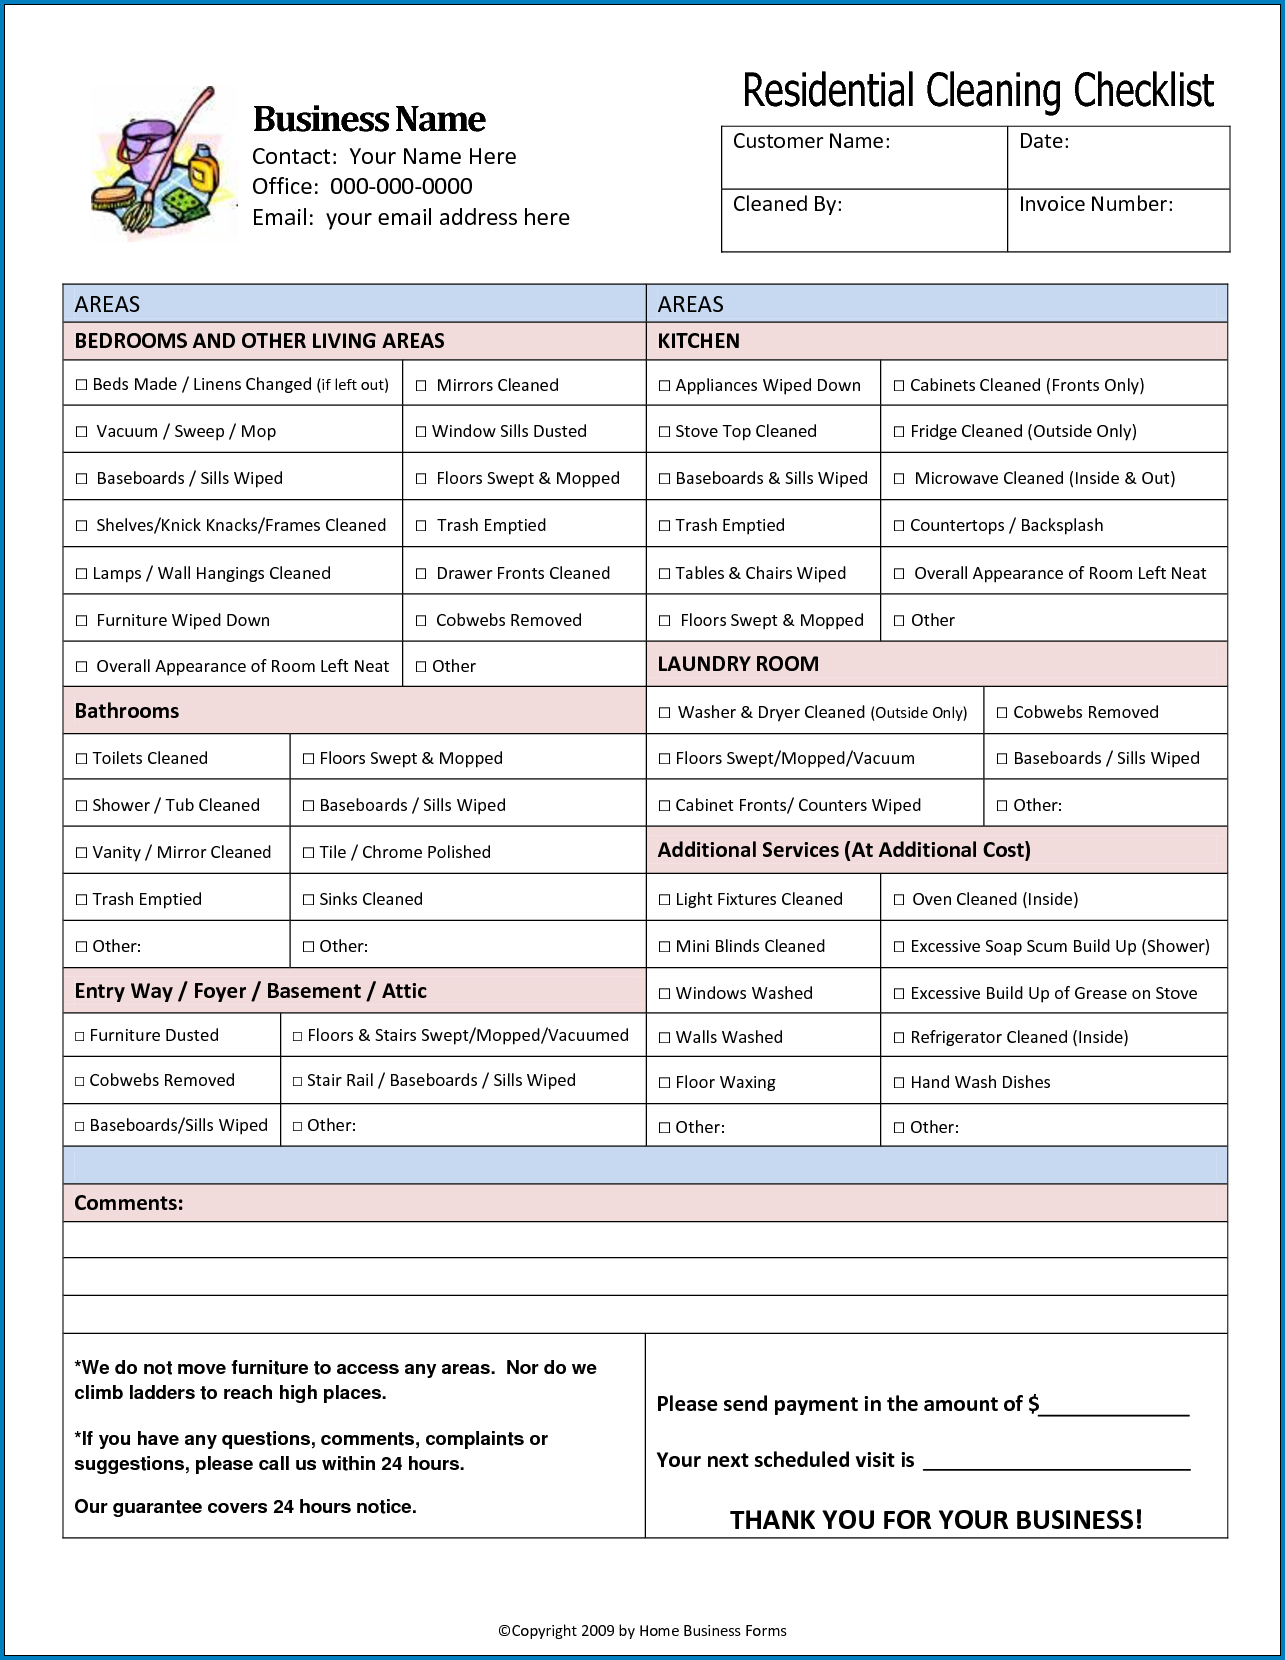 Sample of Residential Cleaning Checklist Template